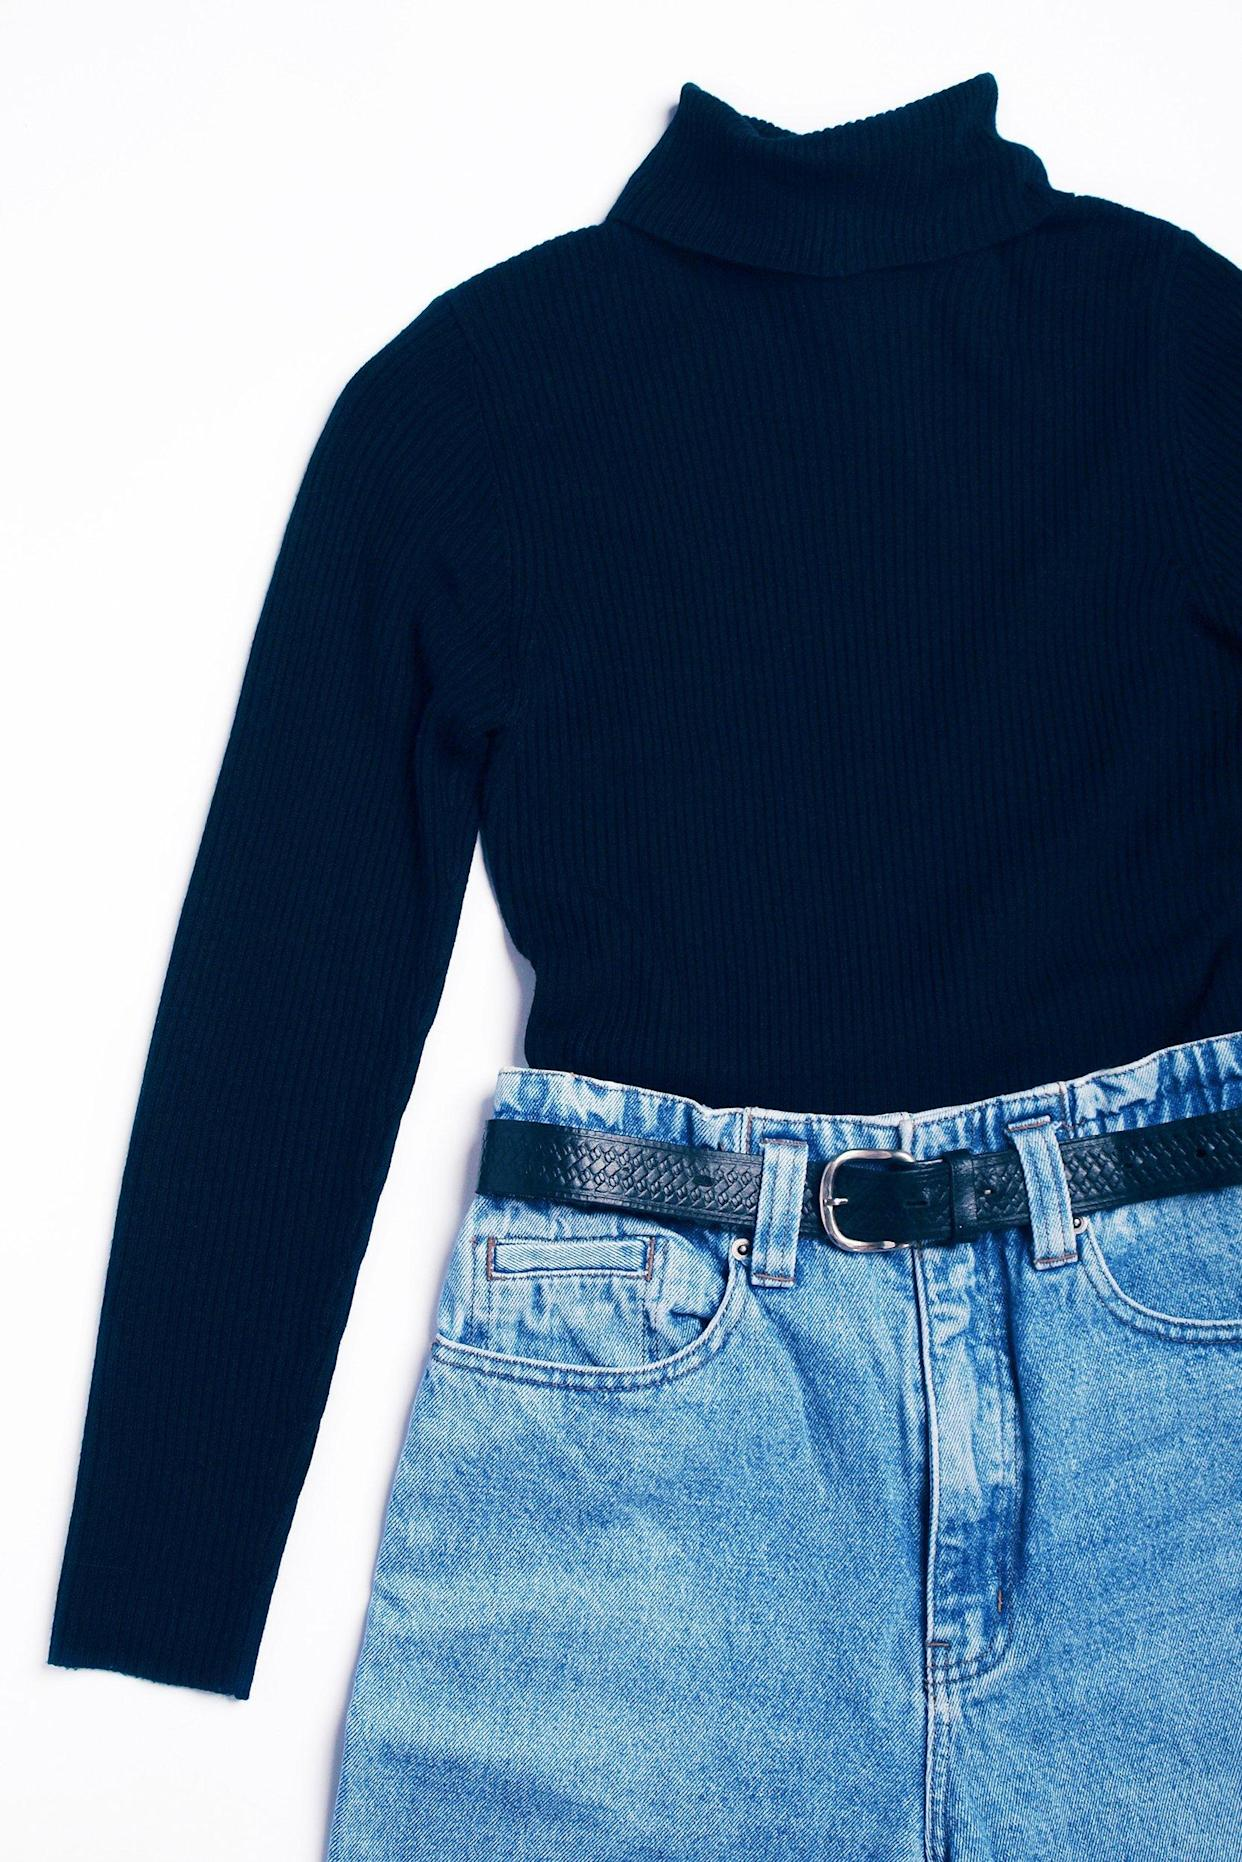 High-waisted mom jeans and black turtleneck